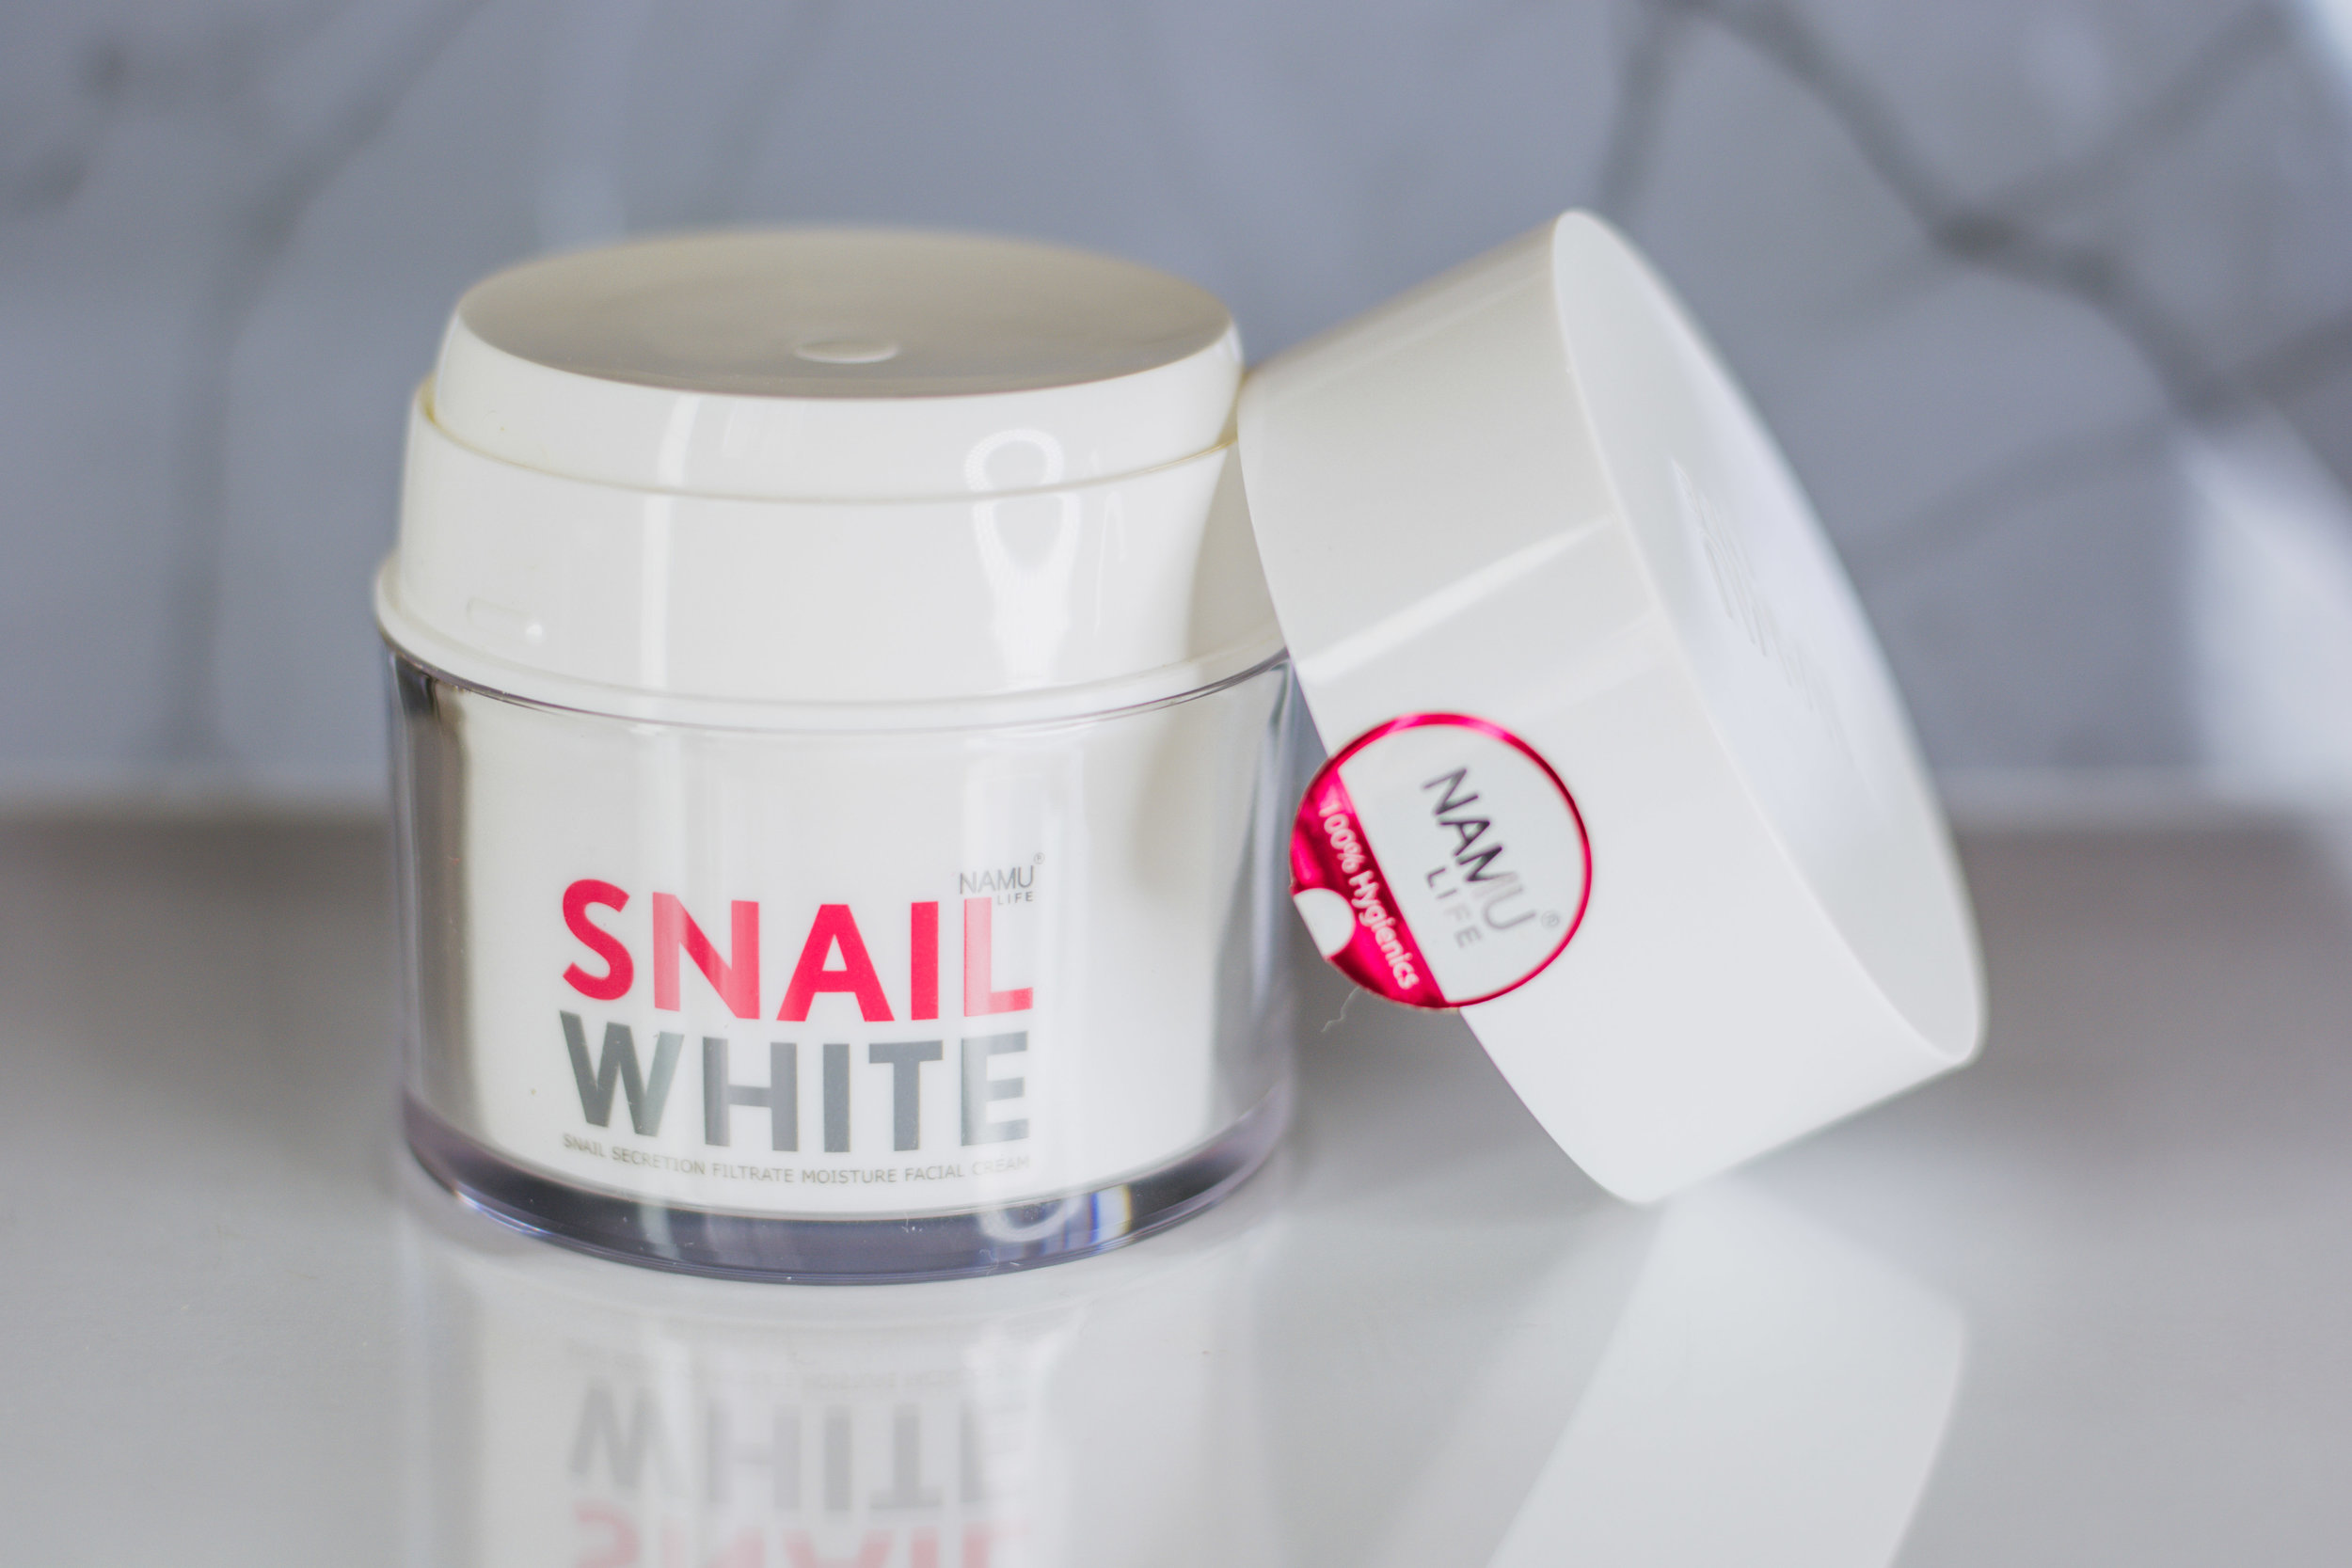 Snail-cream-cosrx_snail_92-snail_white-review-philippines3.jpg